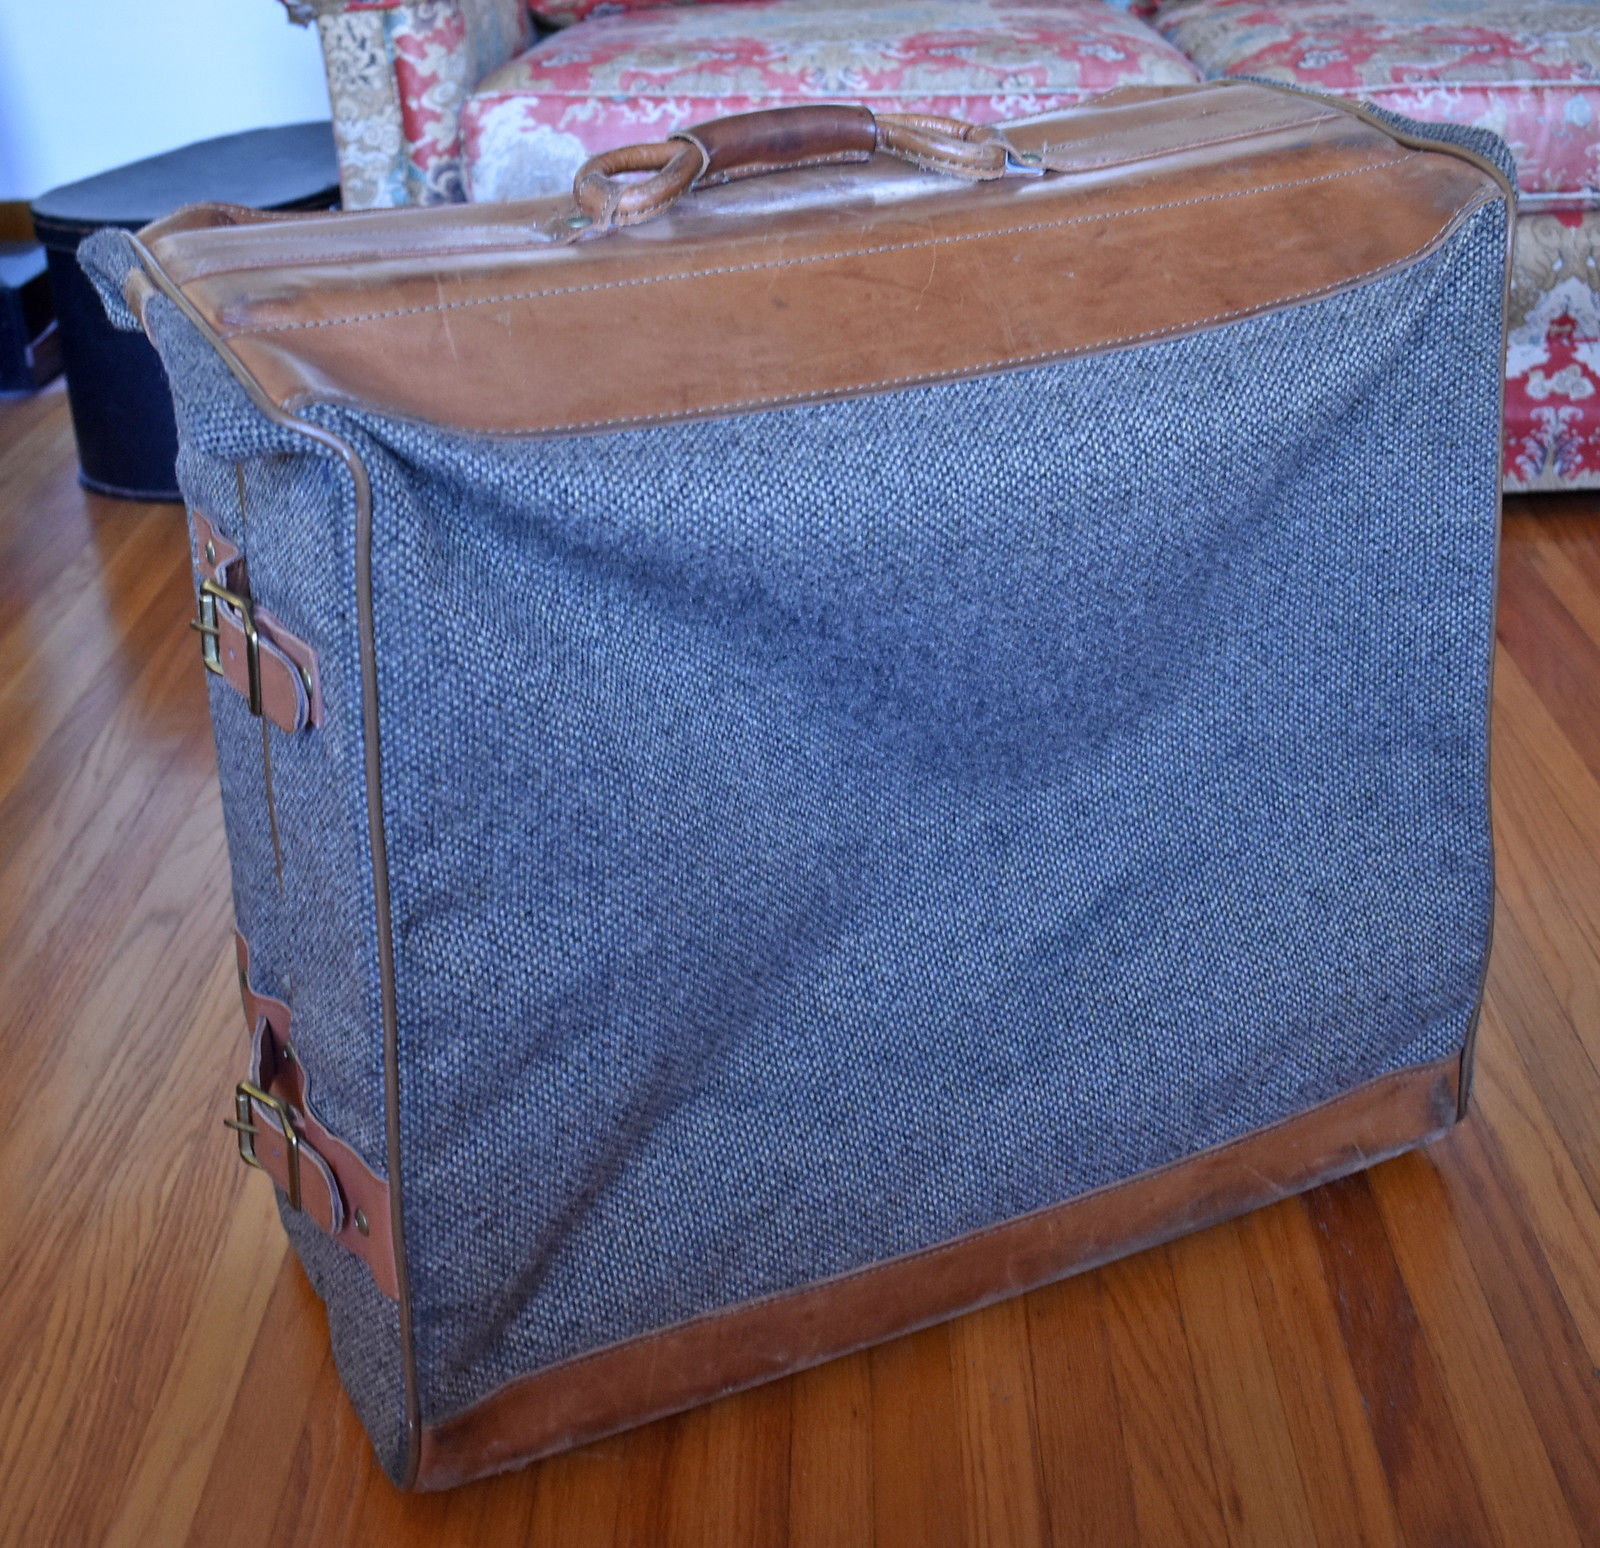 Vintage Luggage Hartmann Tweed Leather and 22 similar items. 57 de9d5da300c69